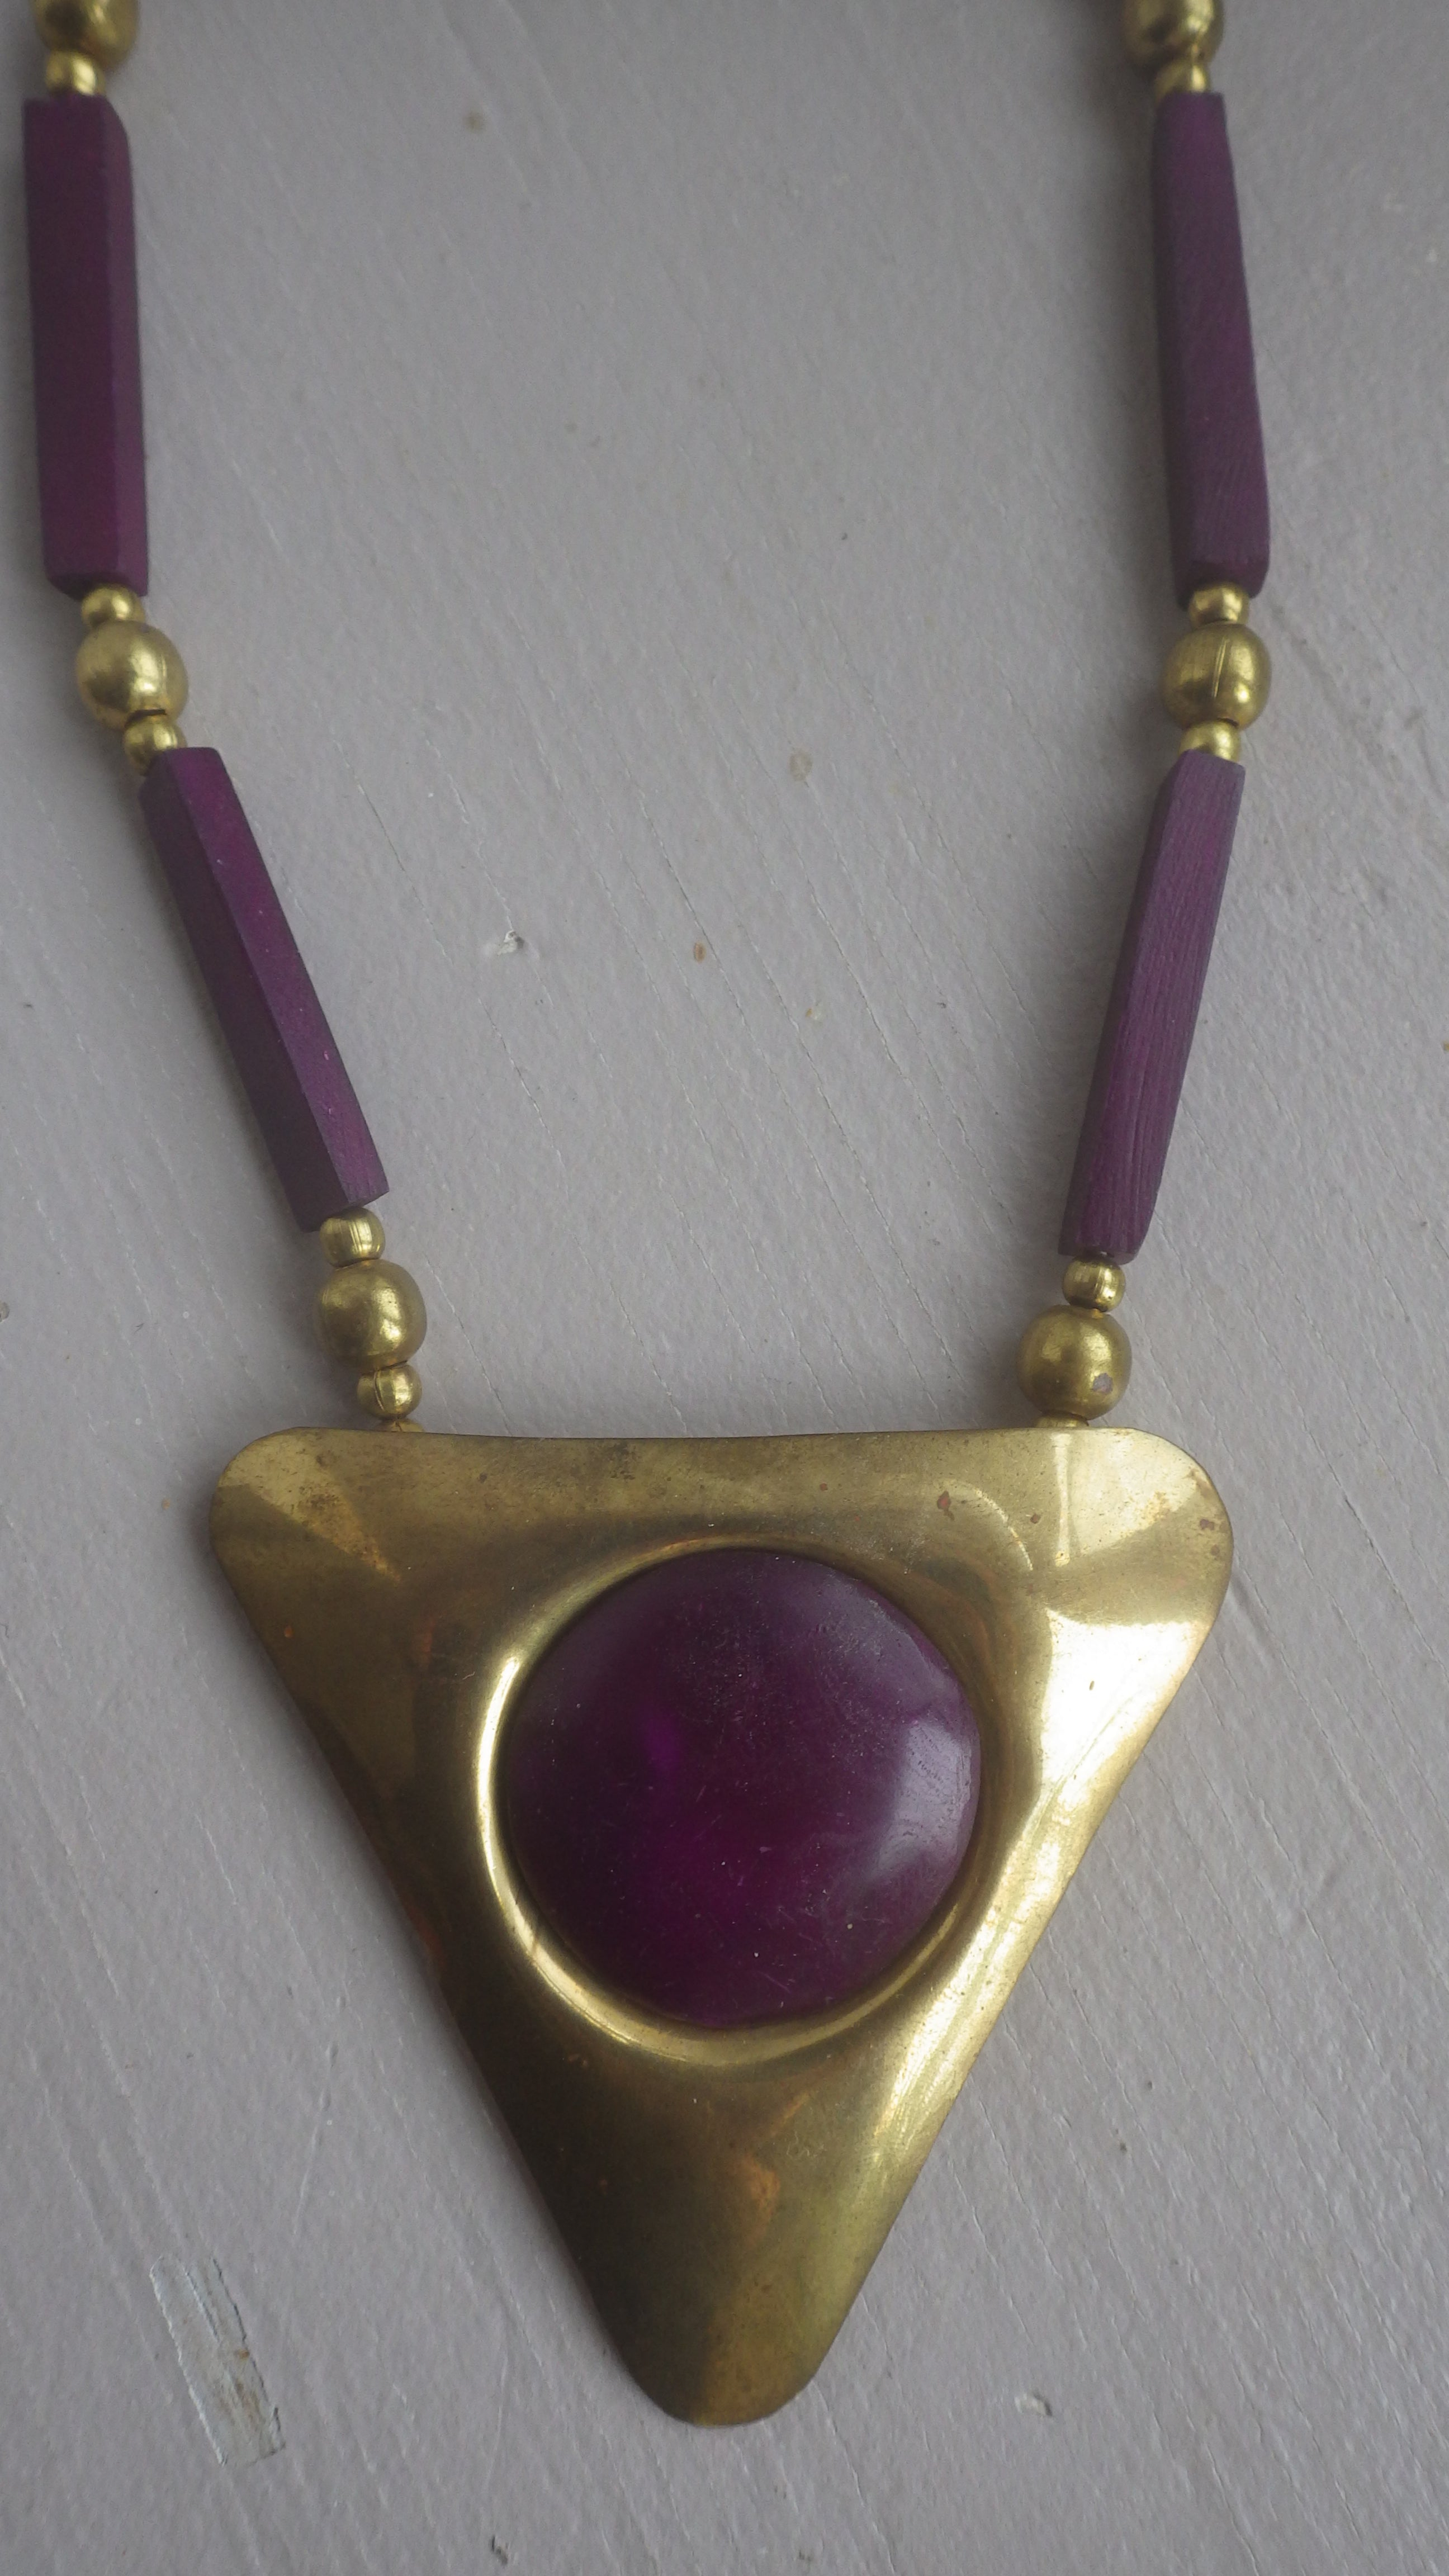 VINTAGE BRASS & BURGUNDY PURPLE PENDANT SCANDINAVIAN MONIES